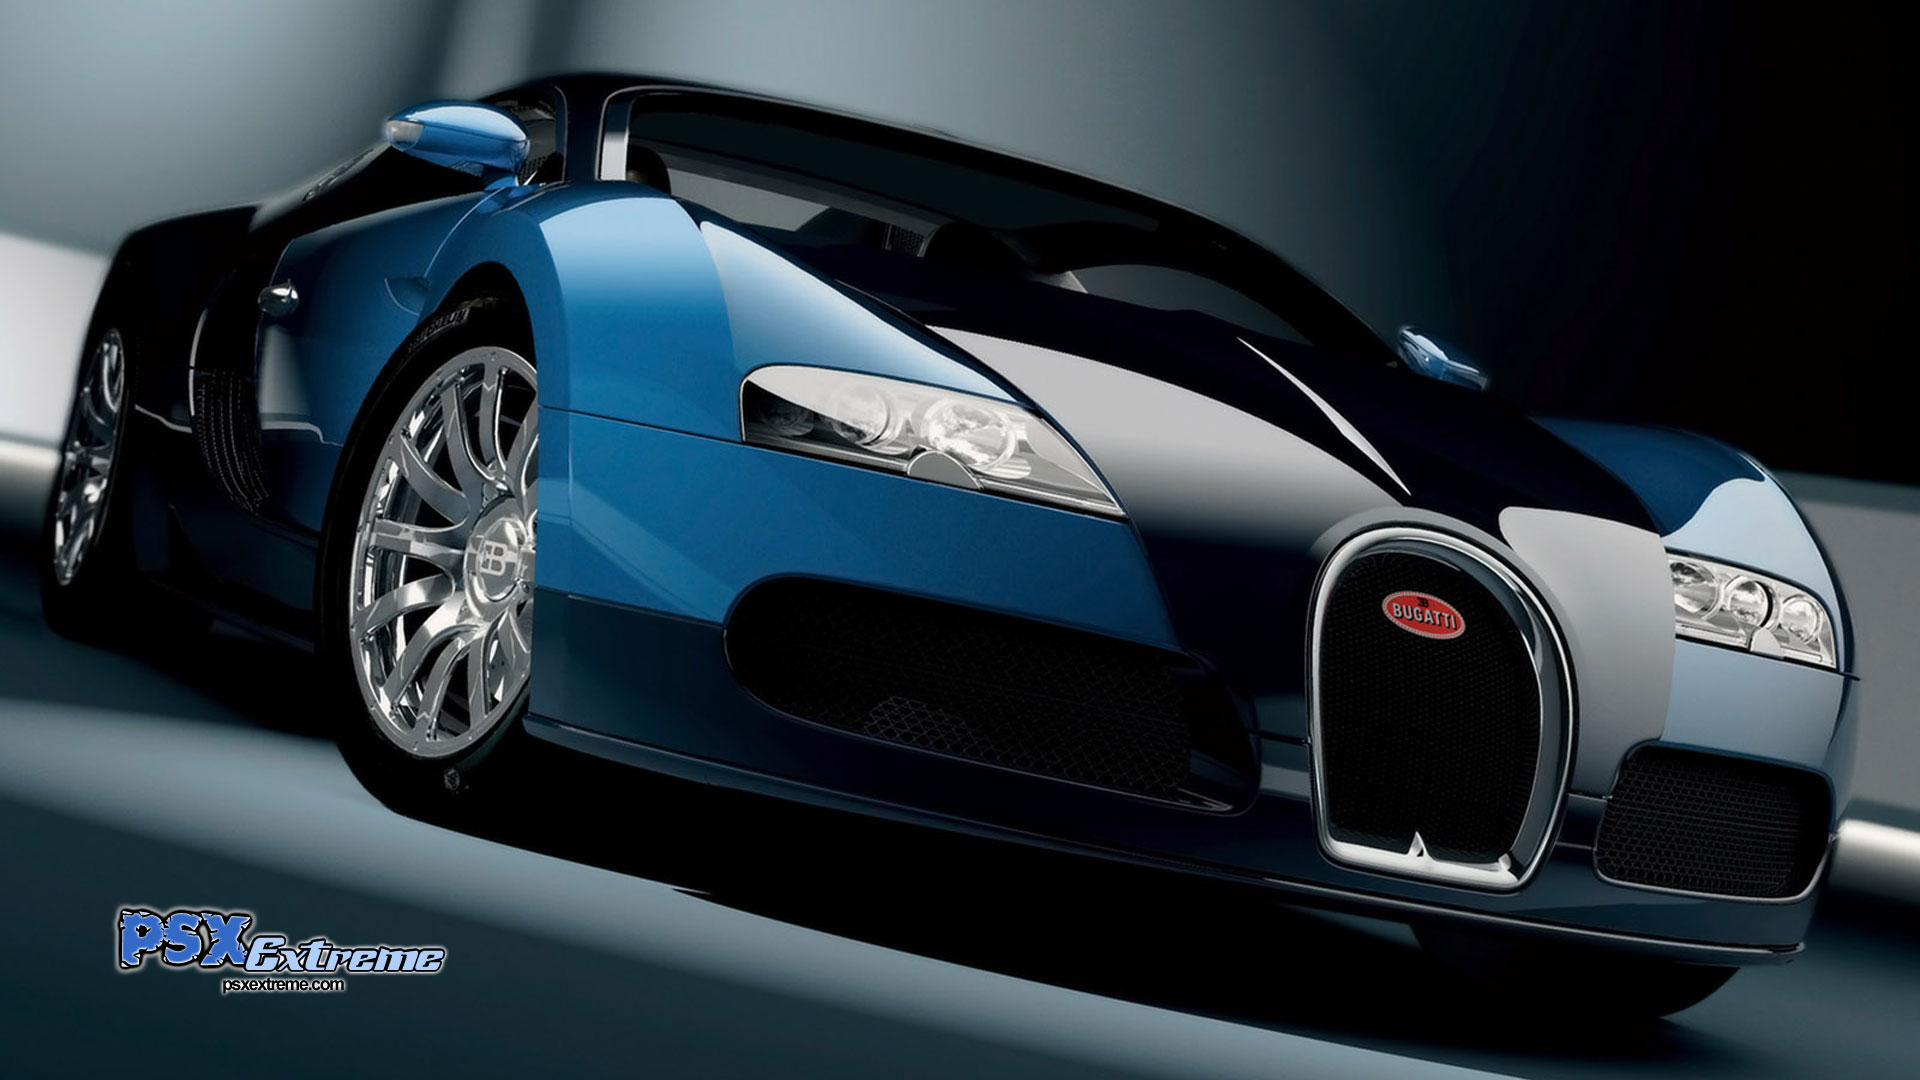 Bugatti veyron Wallpapers   Bugatti veyron Resimleri Wallpapers 1920x1080